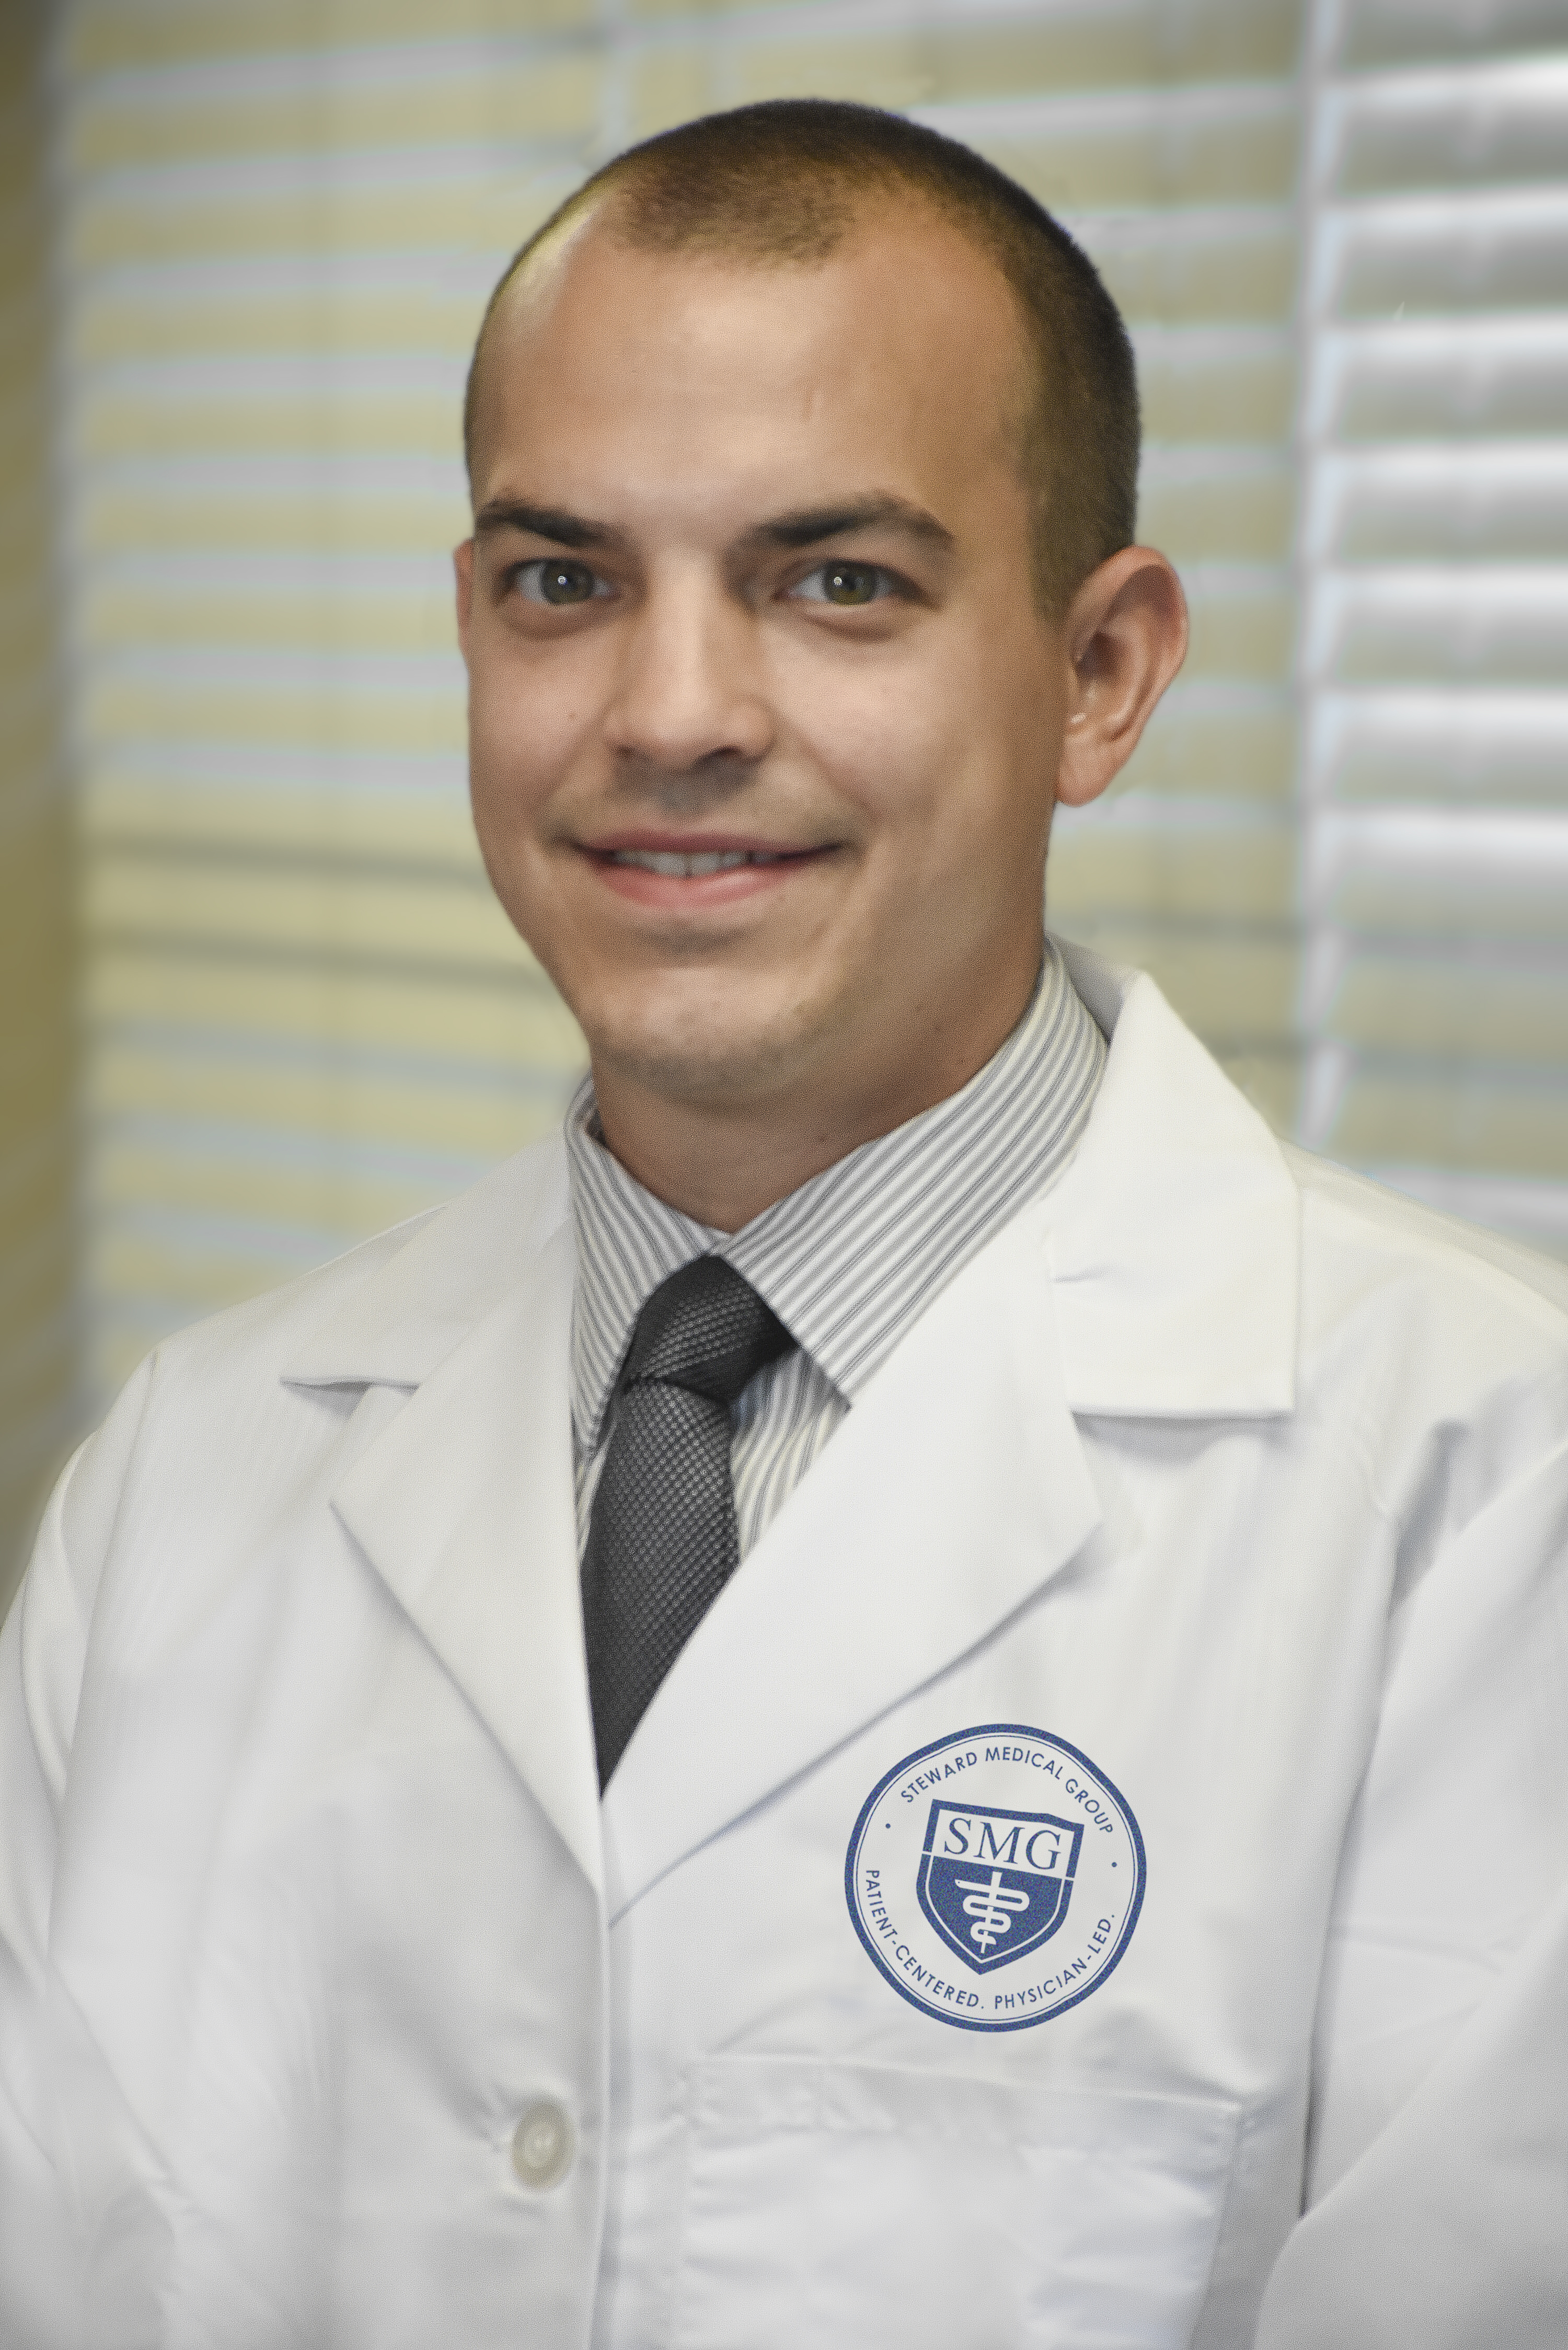 Dr. Anthony Russo